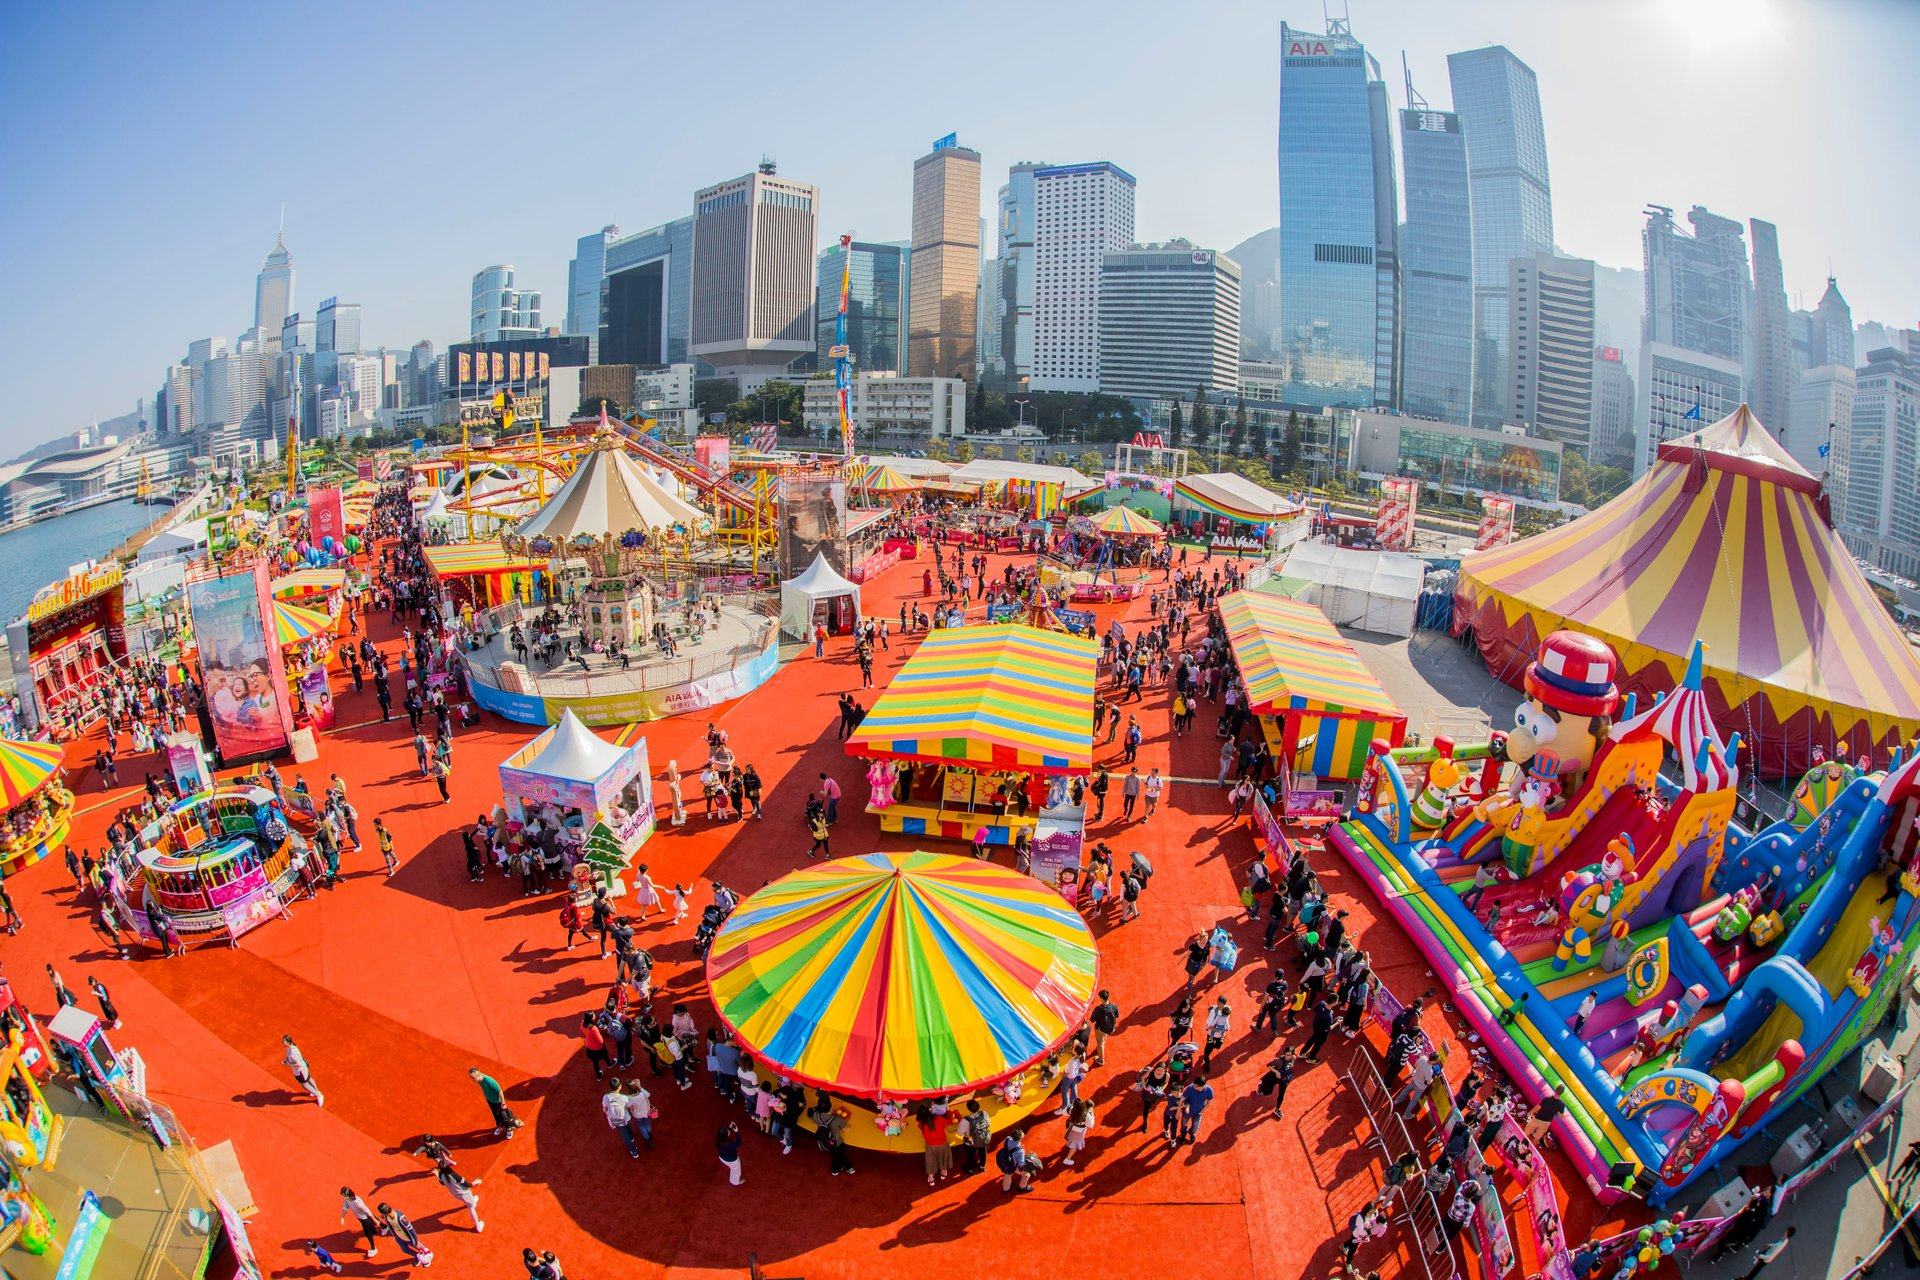 AIA Carnival in Hong Kong - Best Season 2020